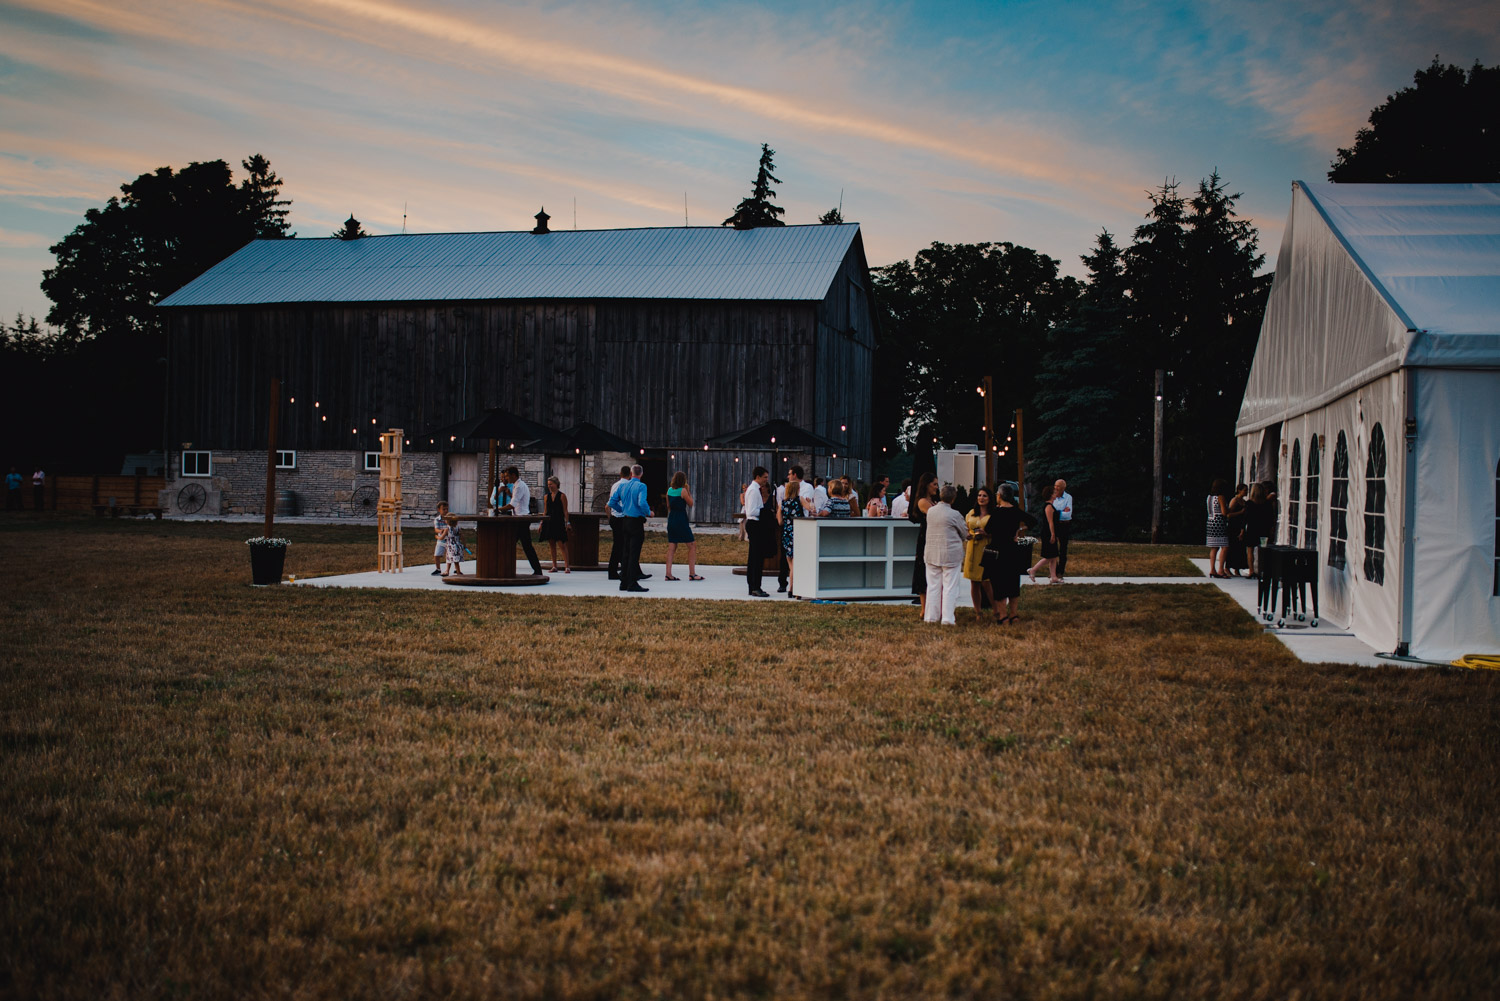 The guests standing by the barn at sunset